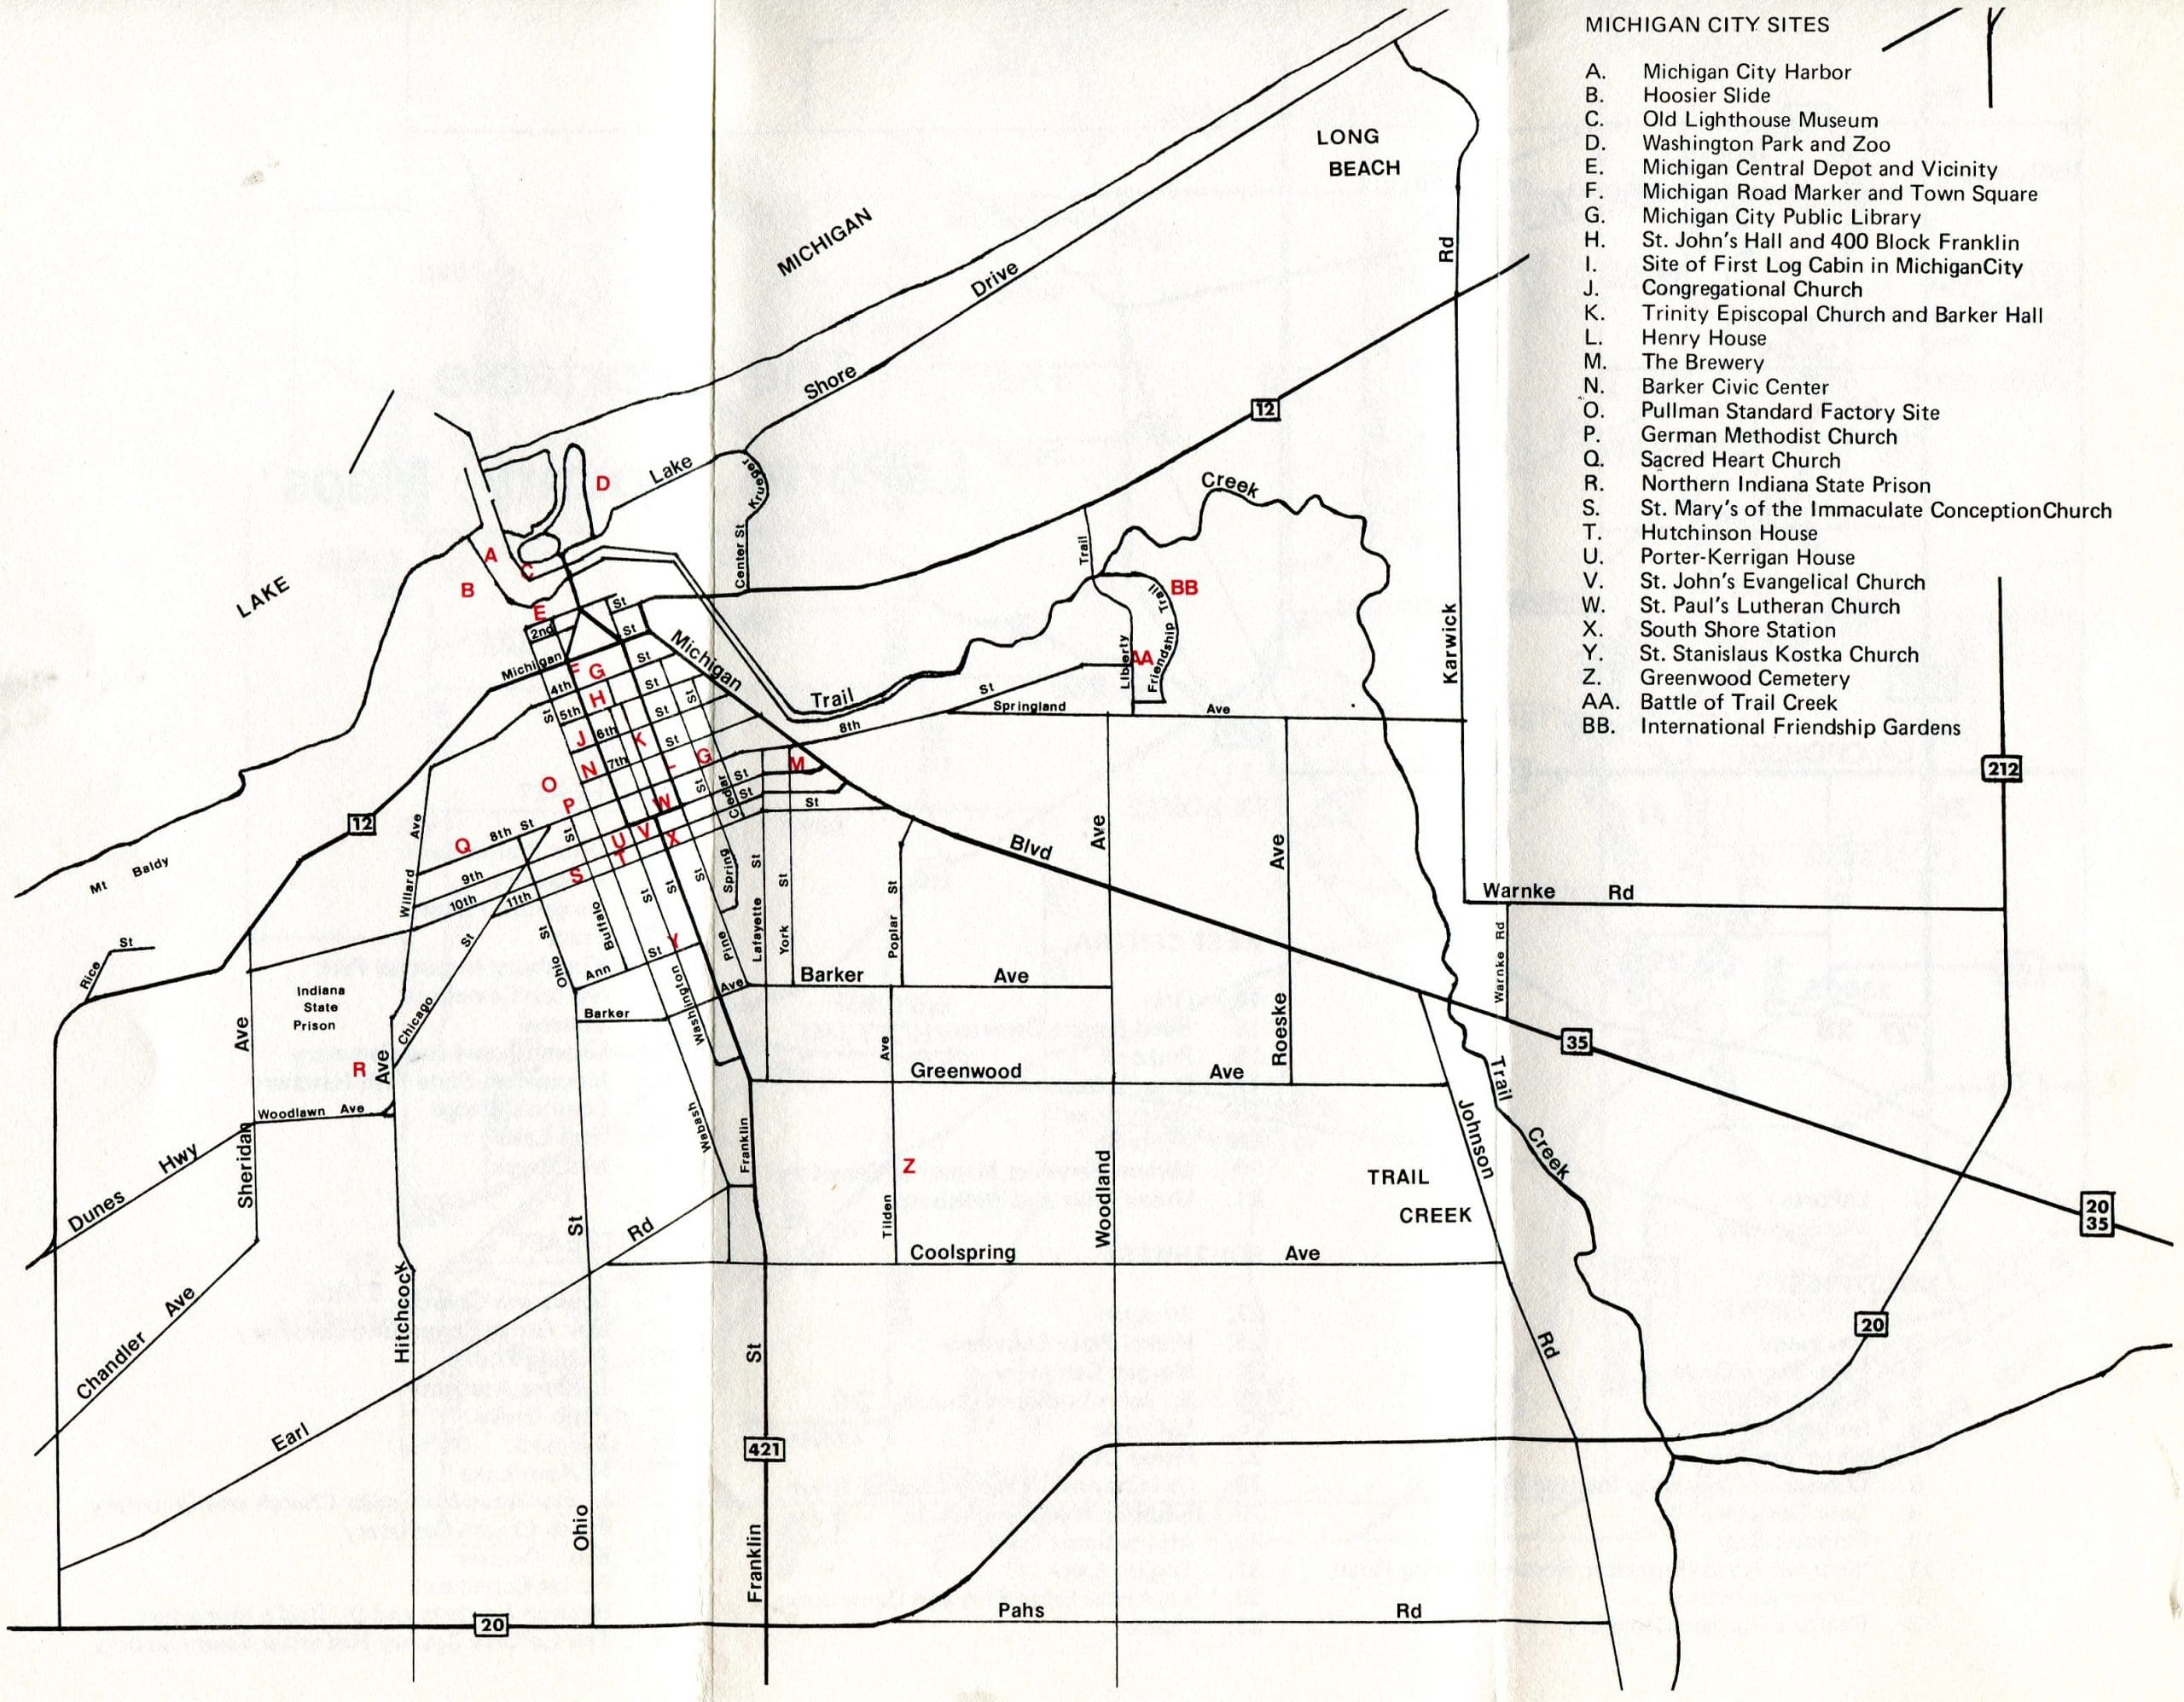 Portable LaPorte County -- map of Michigan City sites